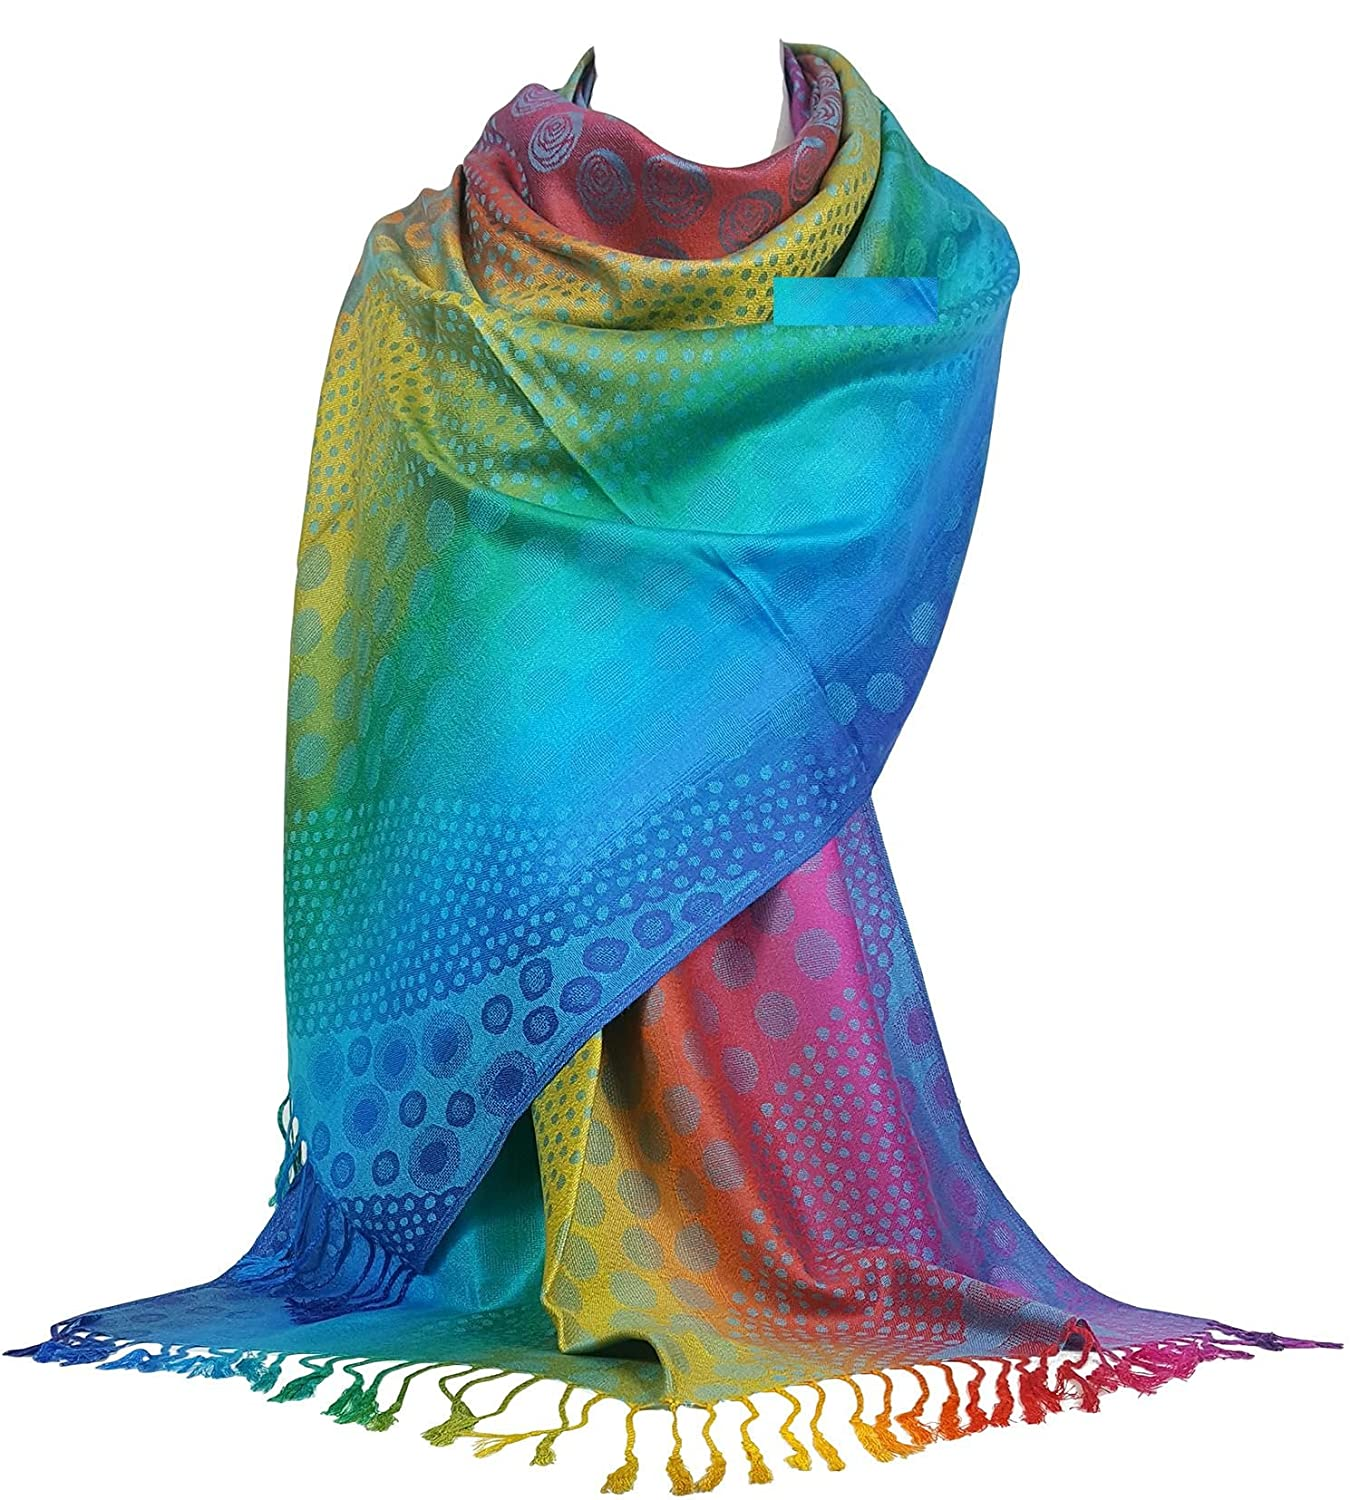 GFM Silky Feel Pashmina Style Scarf Wrap in Paisley/Elephant/Floral